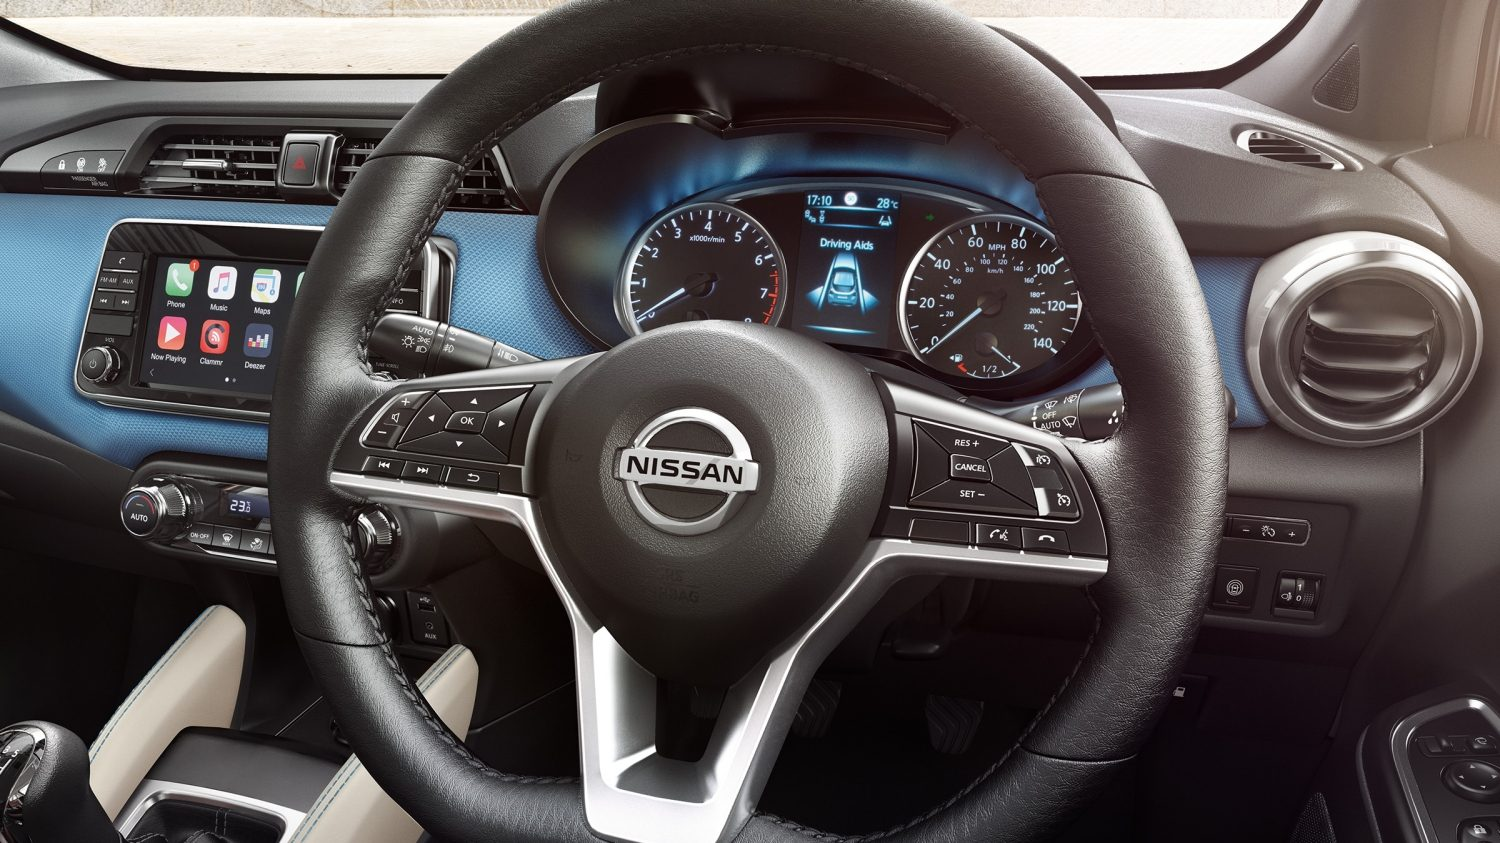 Micra D-Shaped Steering Wheel